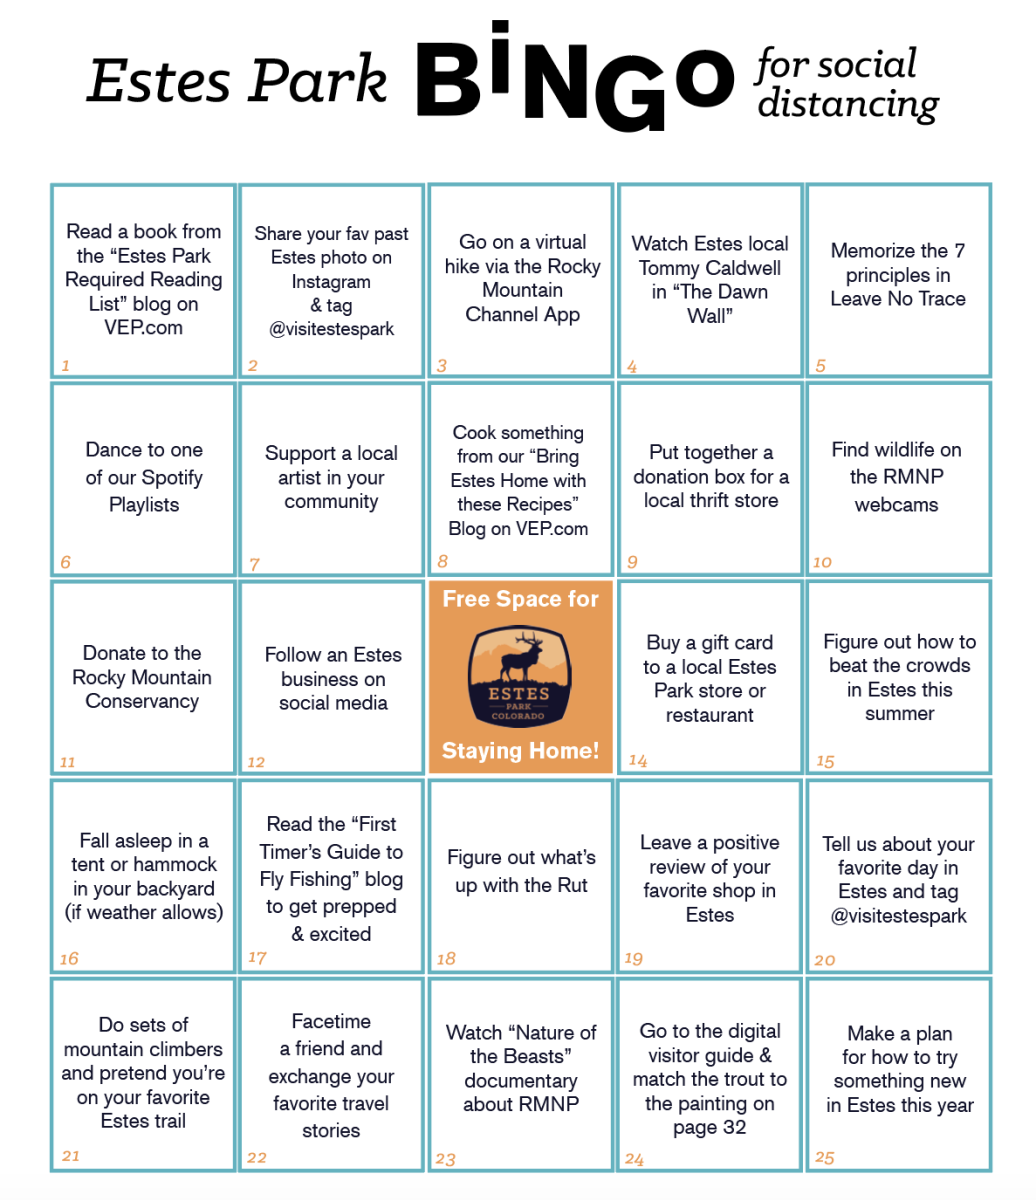 Estes Park Bingo For Social Distancing